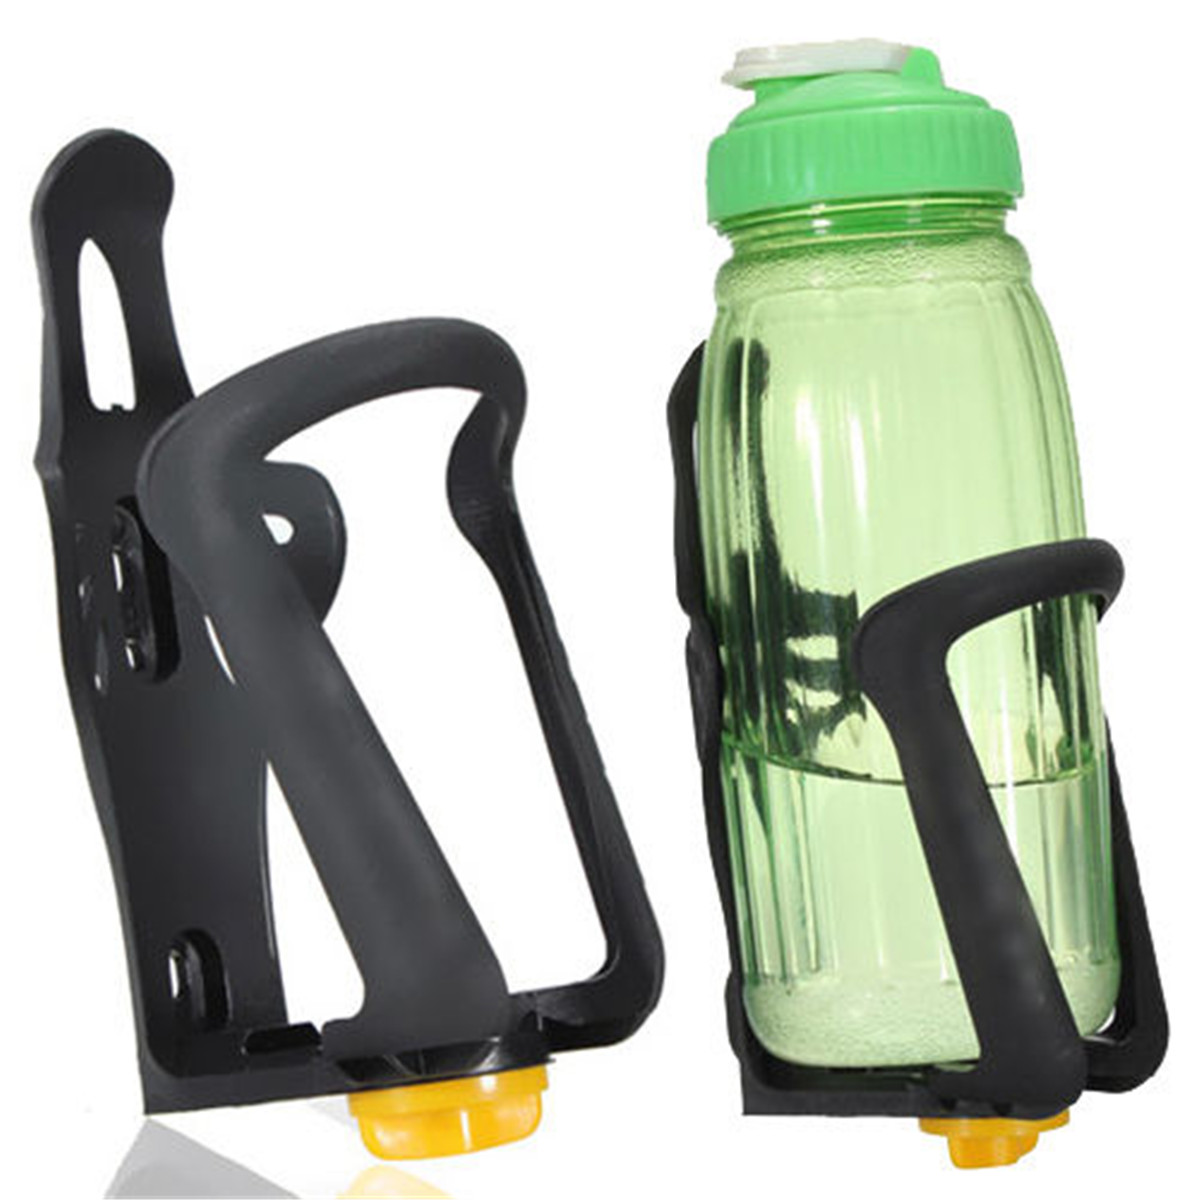 Water Bottle Bike Holder: Adjustable Bike Bicycle Plastic Drink Water Bottle Cup